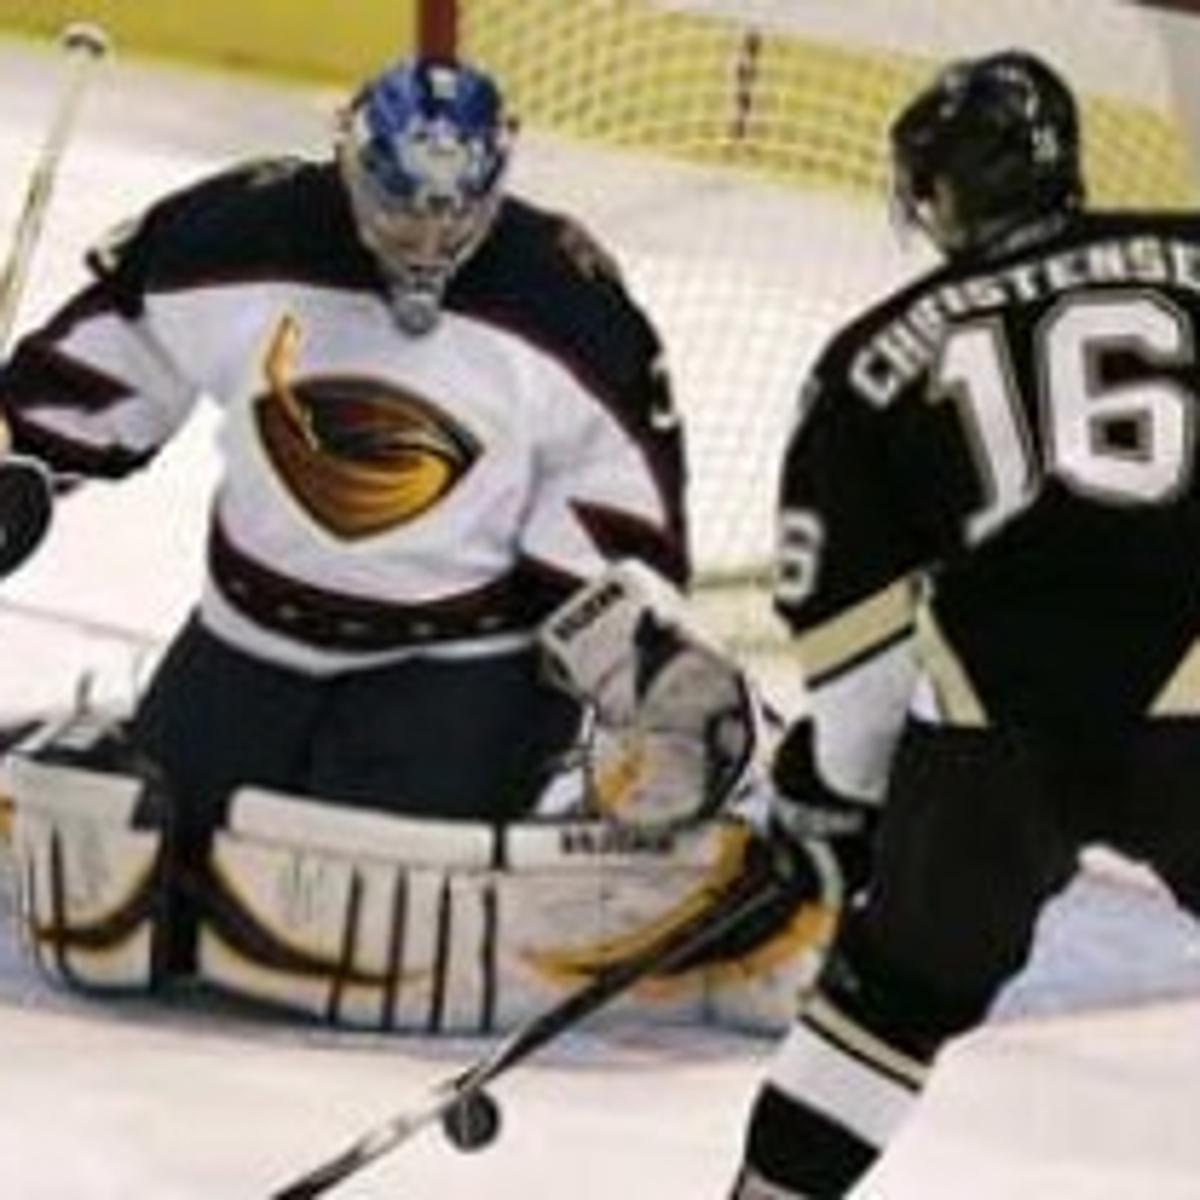 Thrashers take down Pens for fifth straight | Sports News